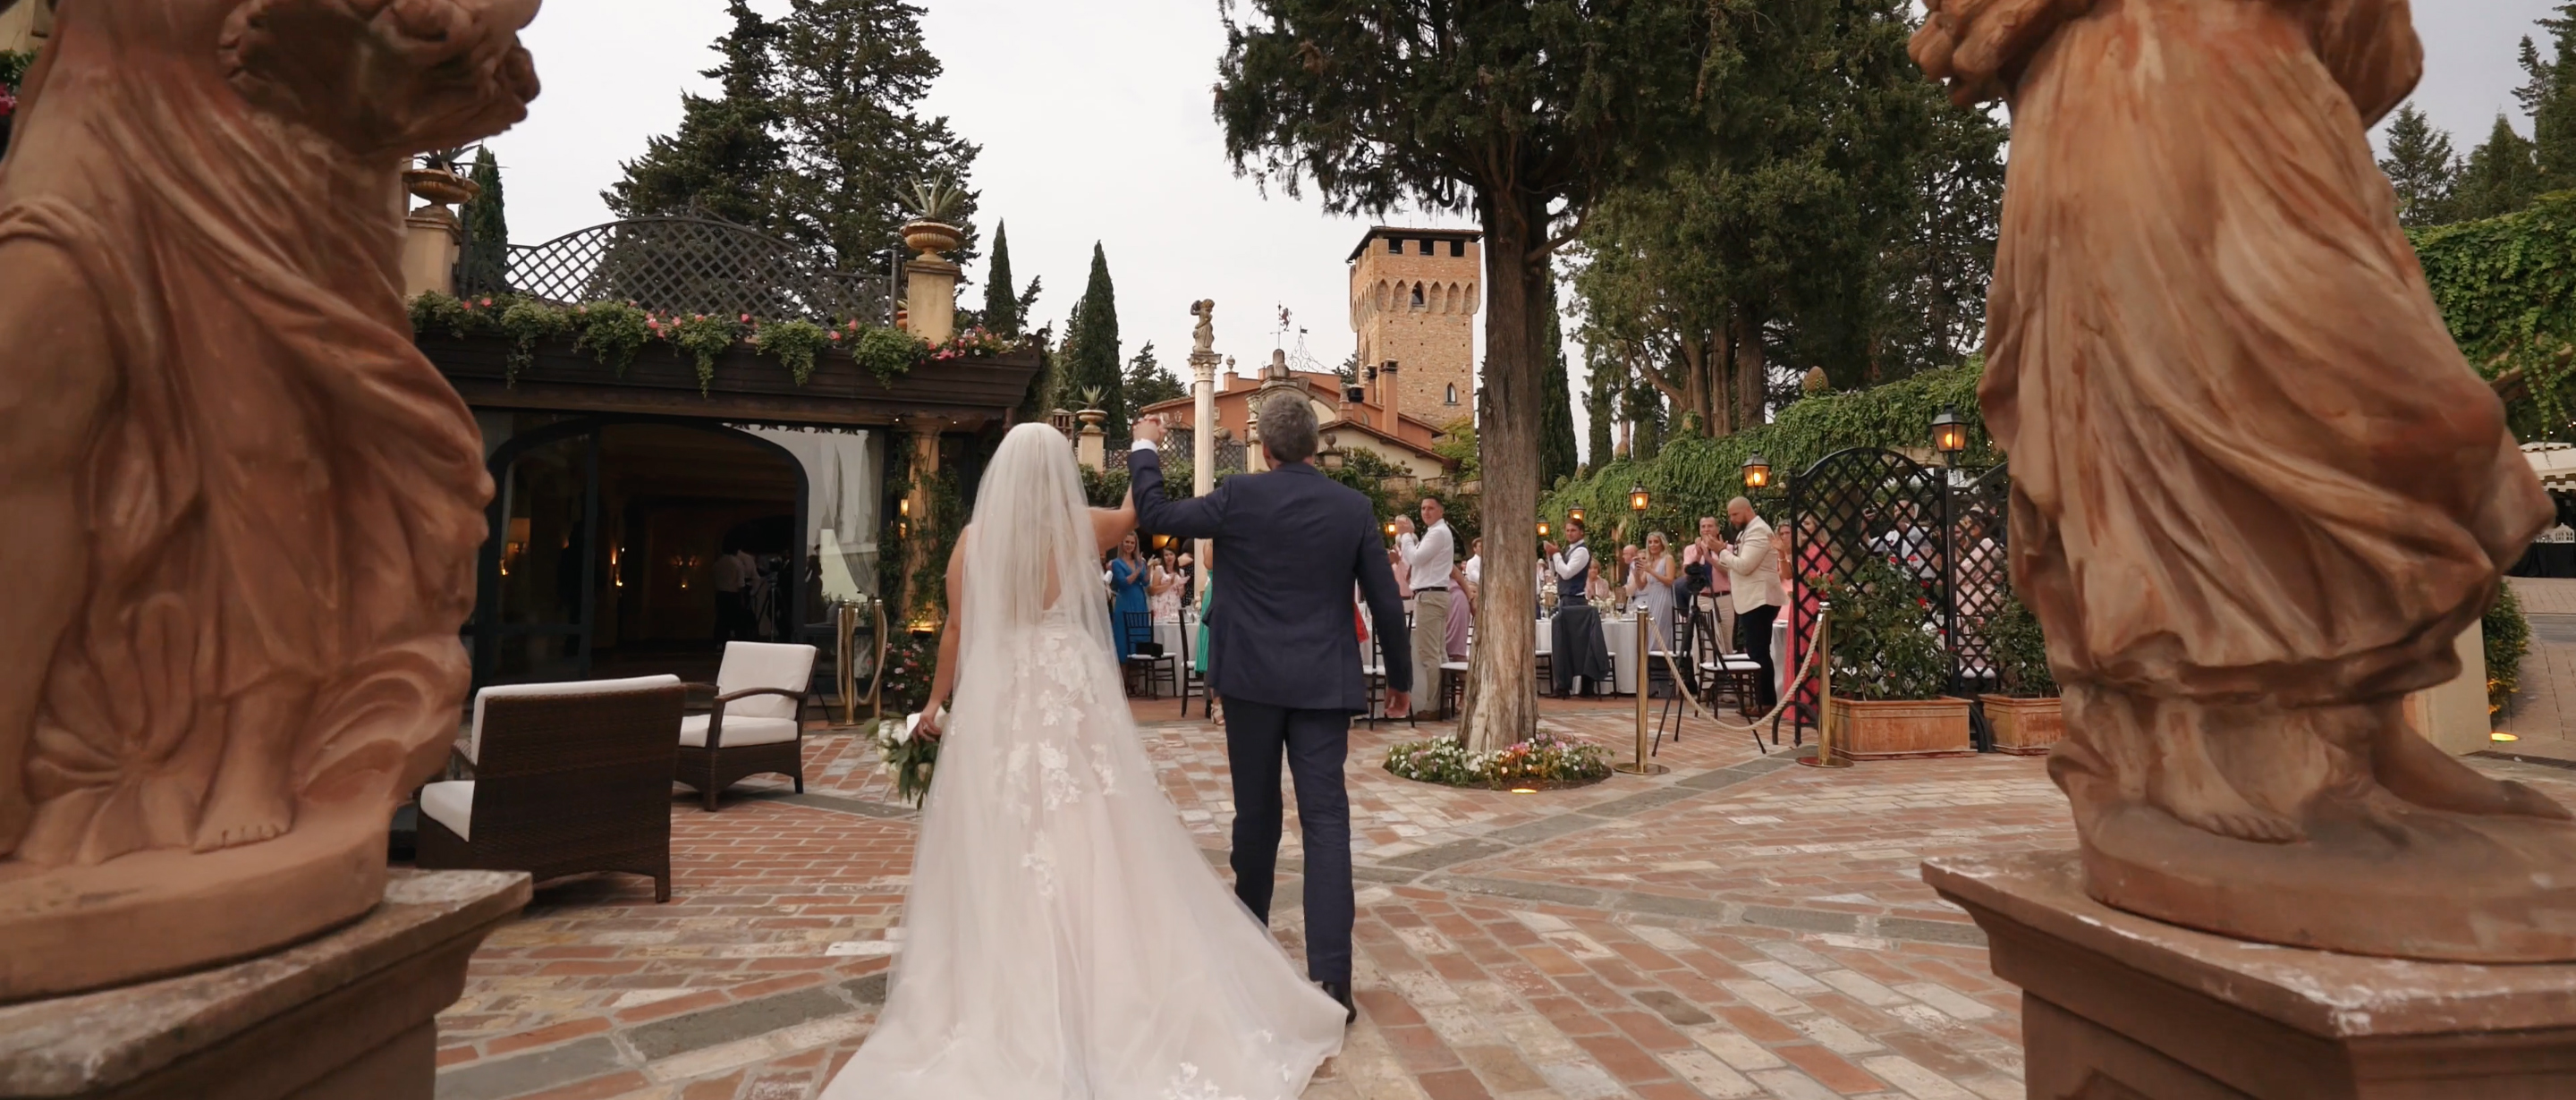 Antica Fattoria di Paterno wedding 5